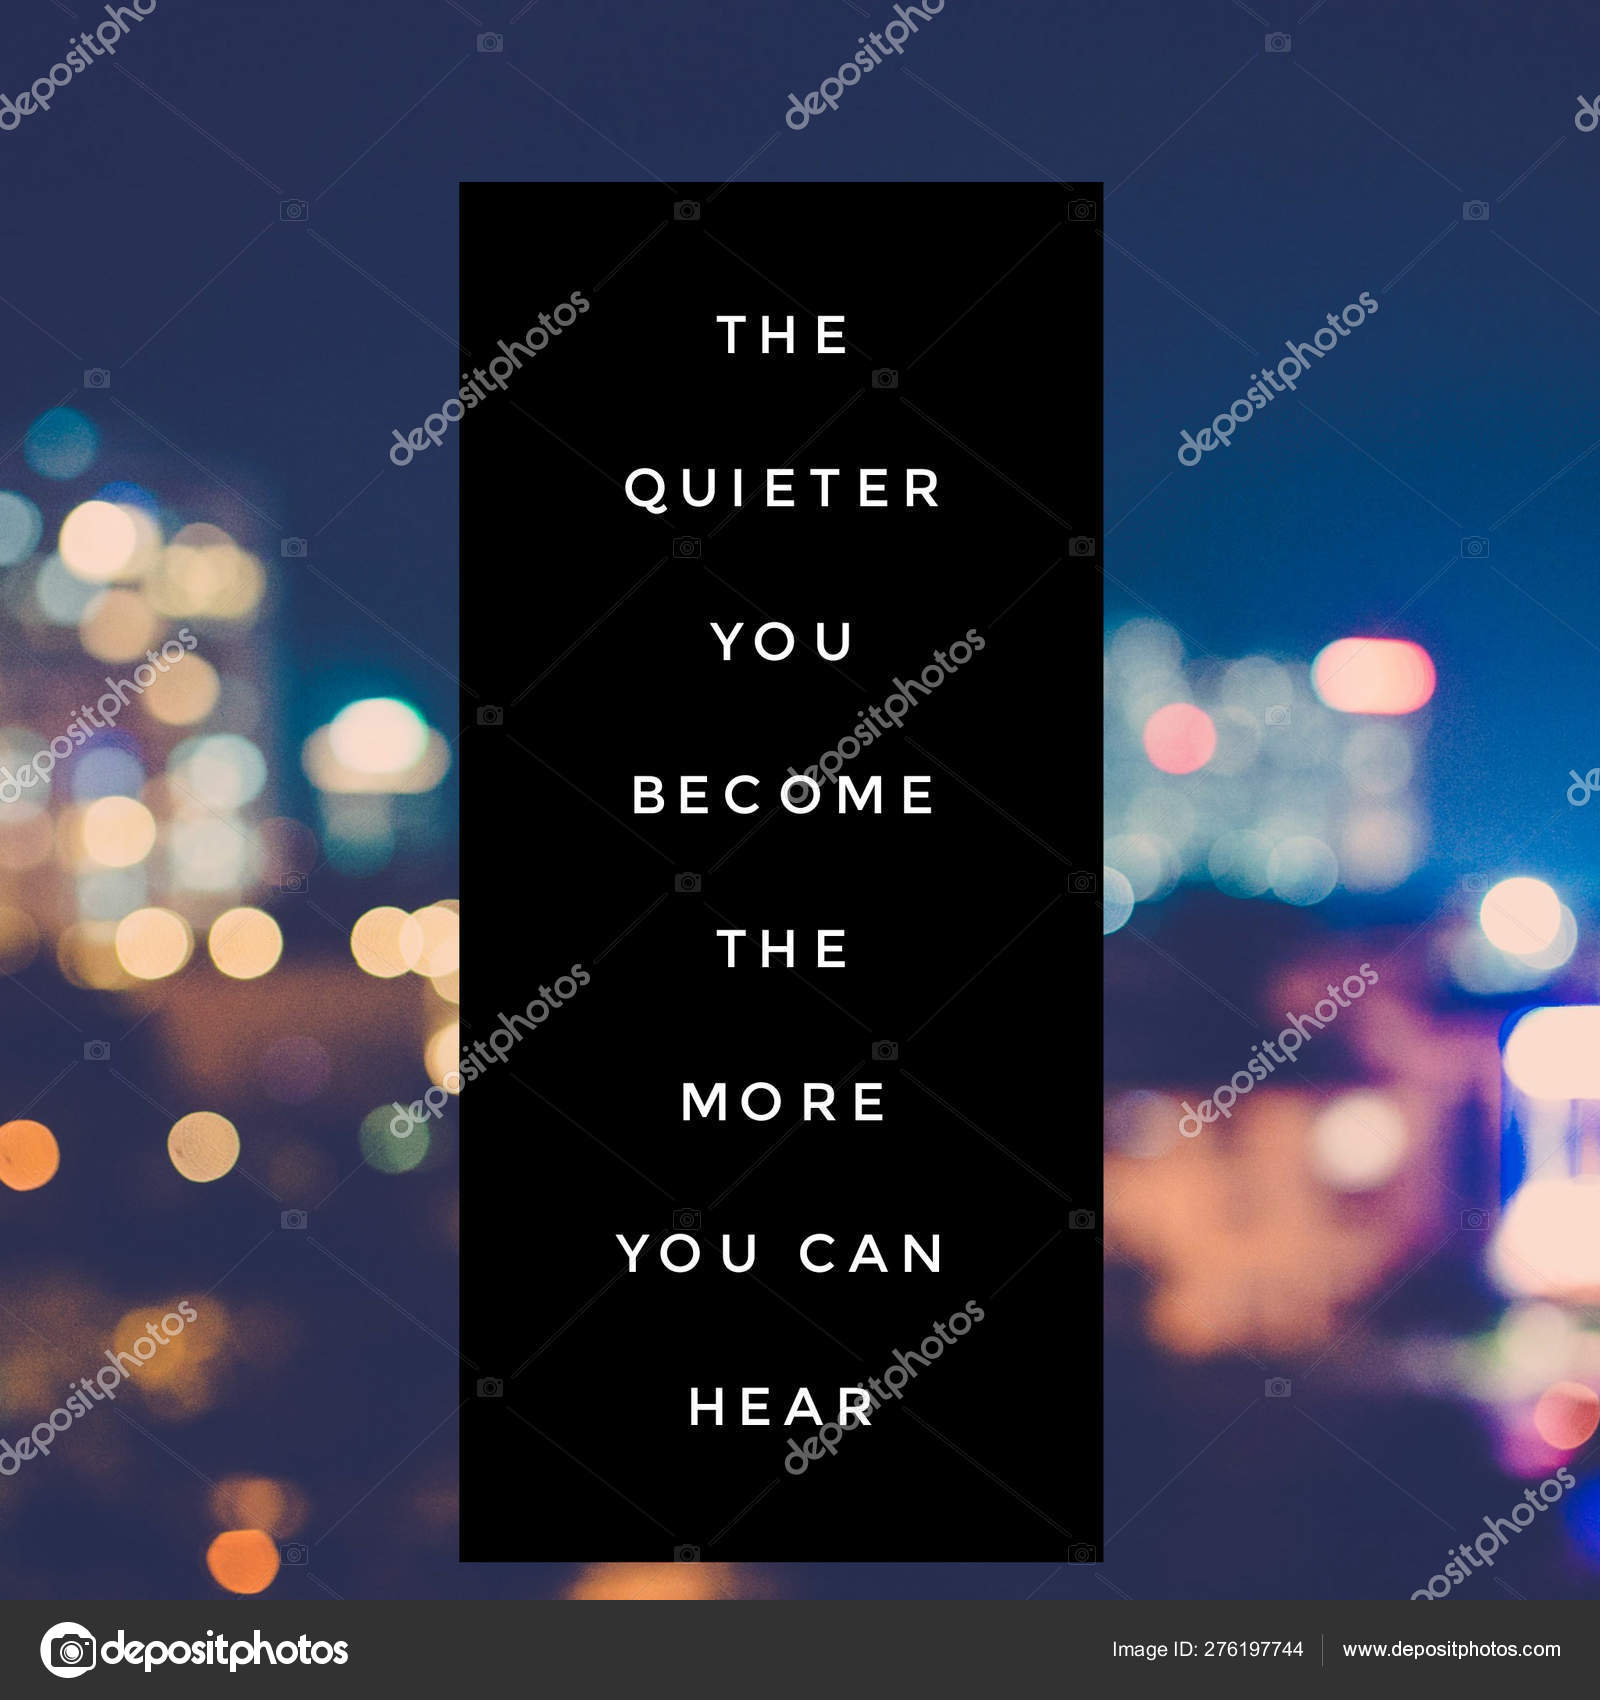 Inspirational Quote Best Motivational Quotes Sayings Life Wisdom Positive Uplifting Stock Photo C Addy Dude 276197744